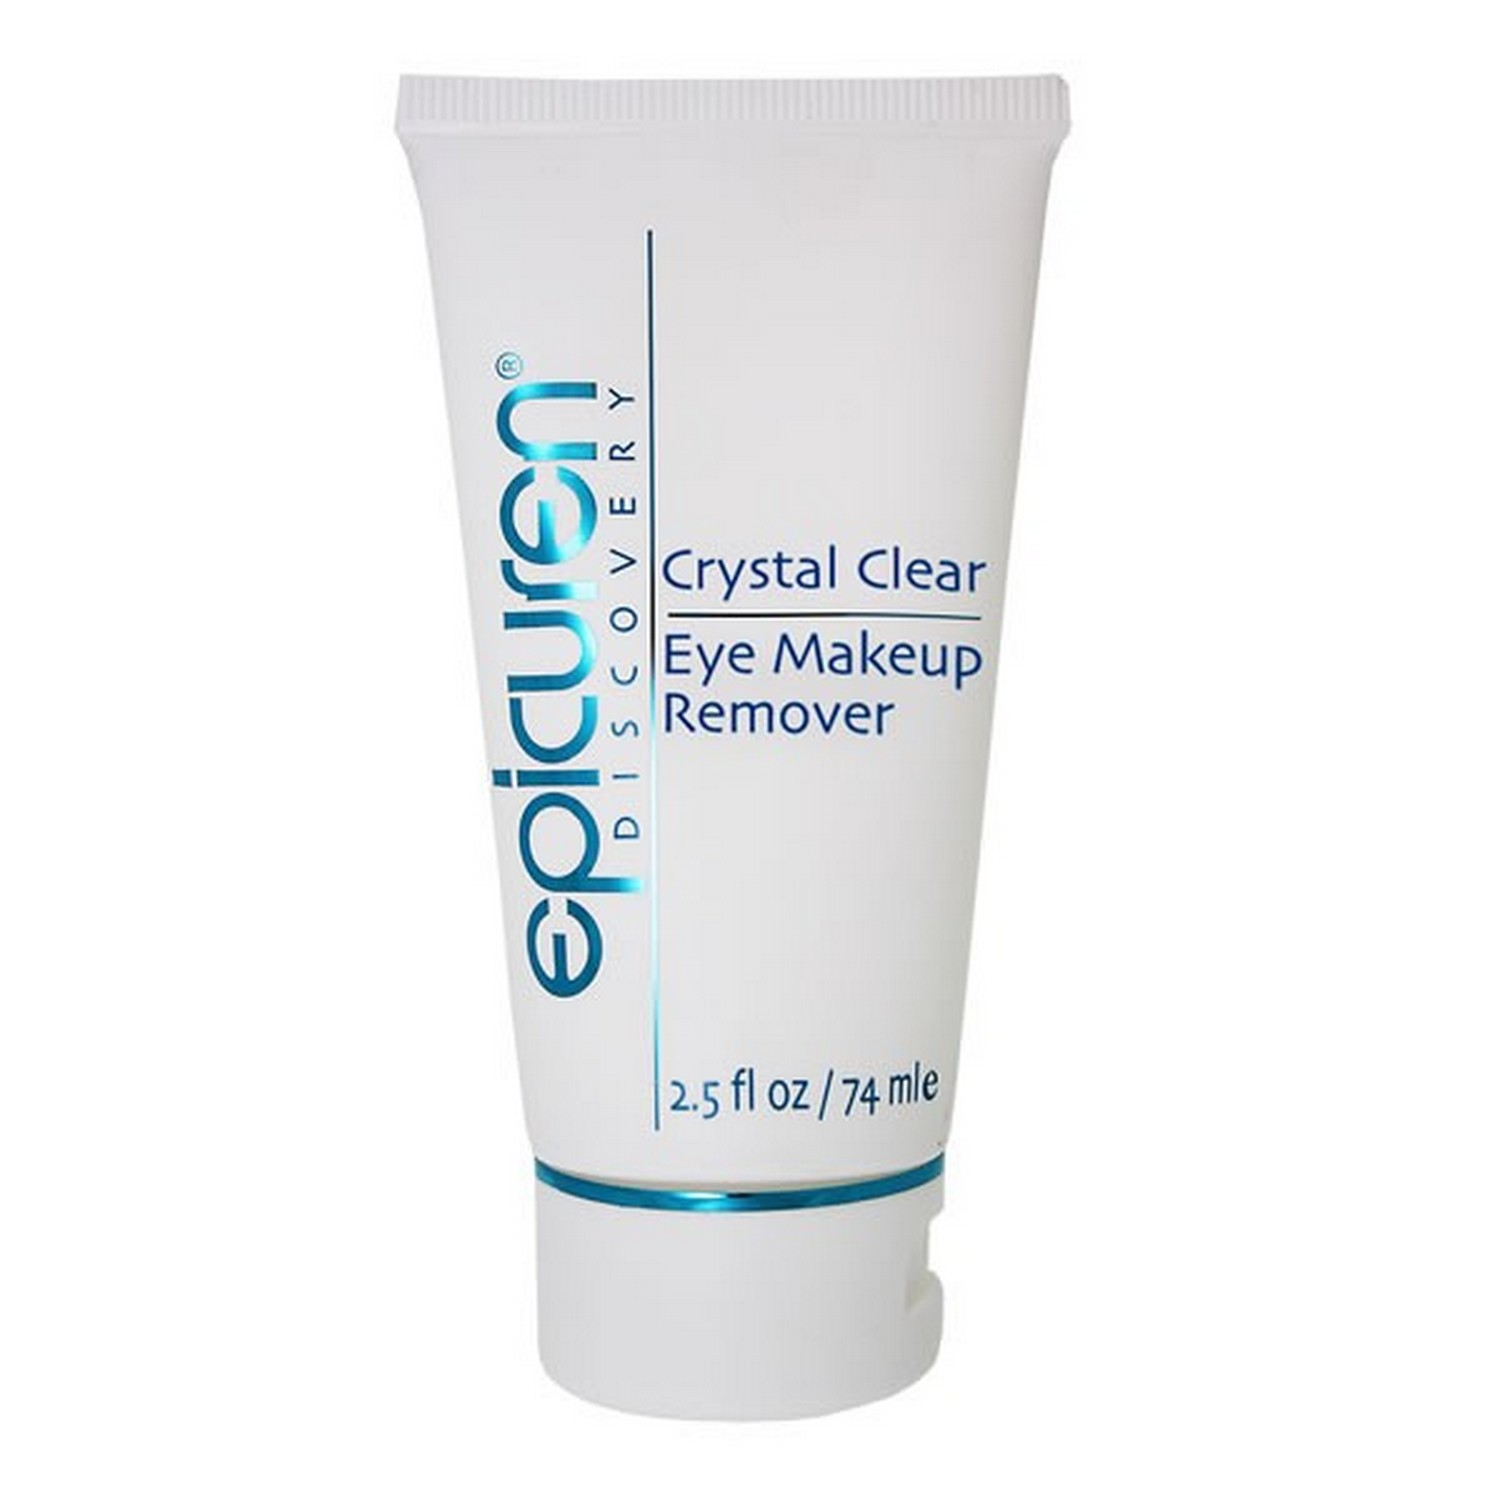 epicuren Discovery Crystal Clear Eye Makeup Remover (2.5 fl oz / 74 ml)